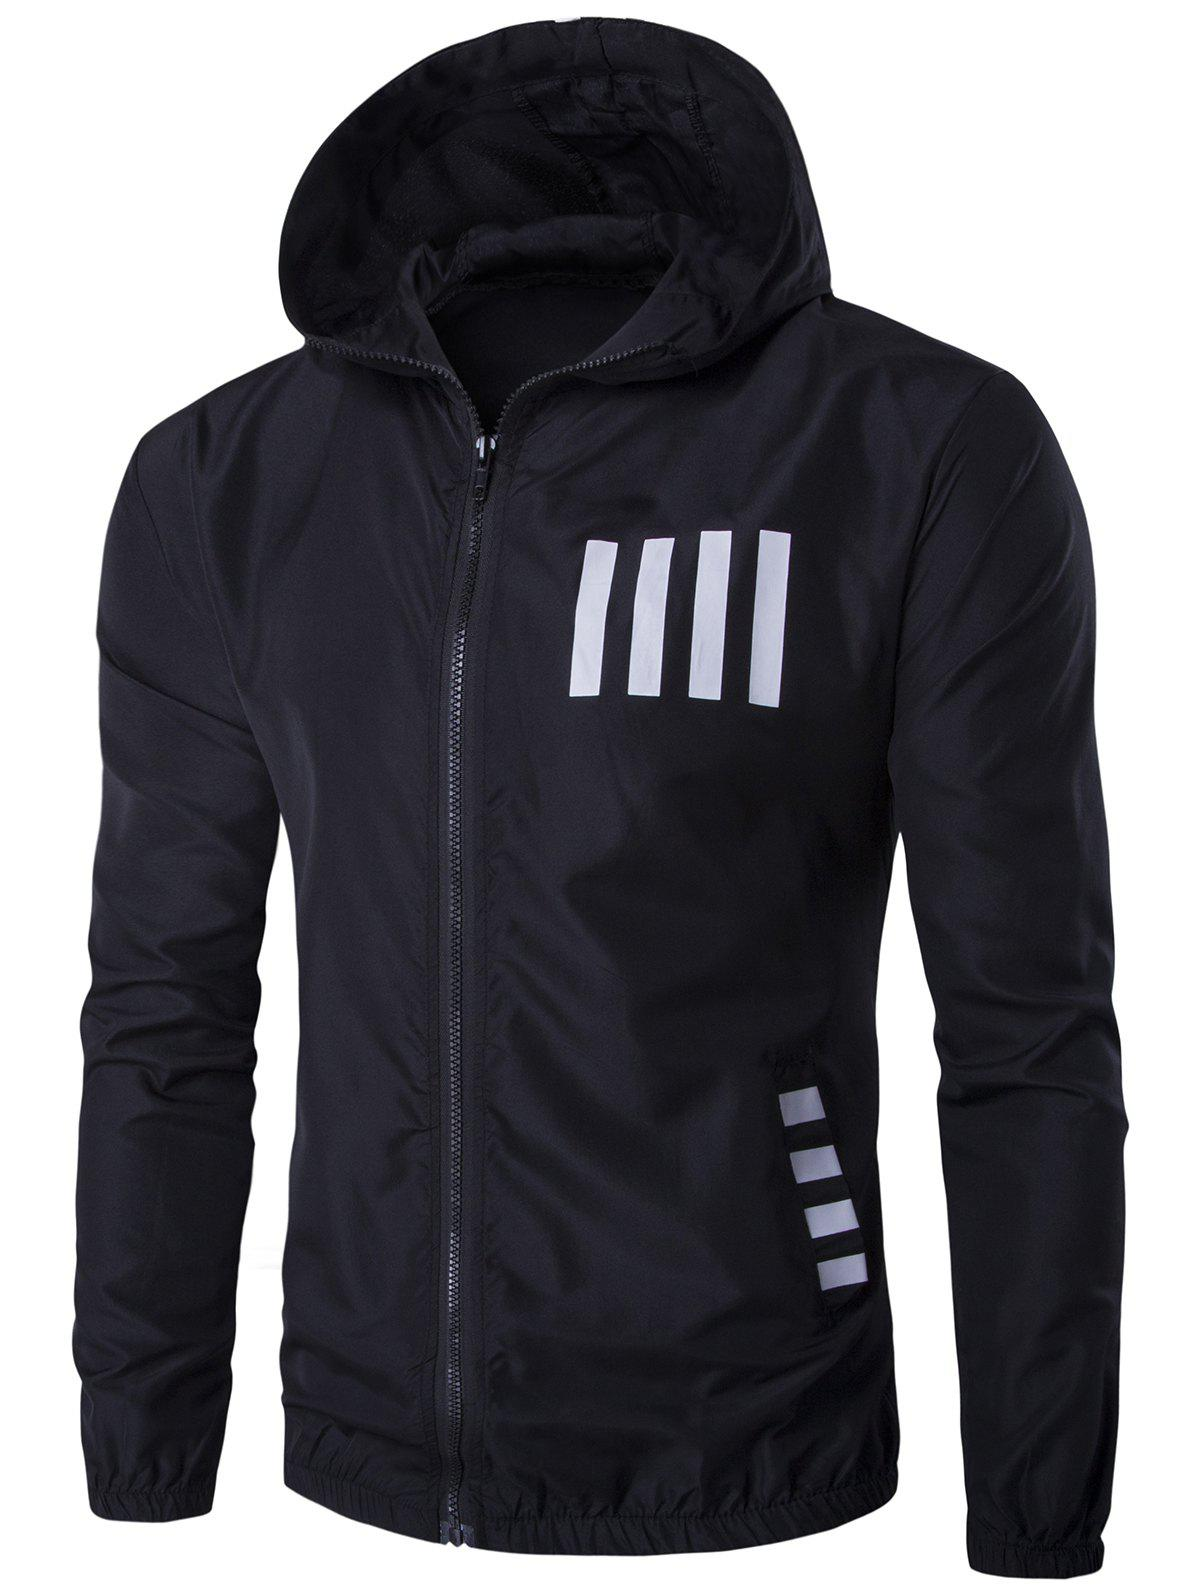 New Hooded Number Print Zip Up Sunscreen Jacket